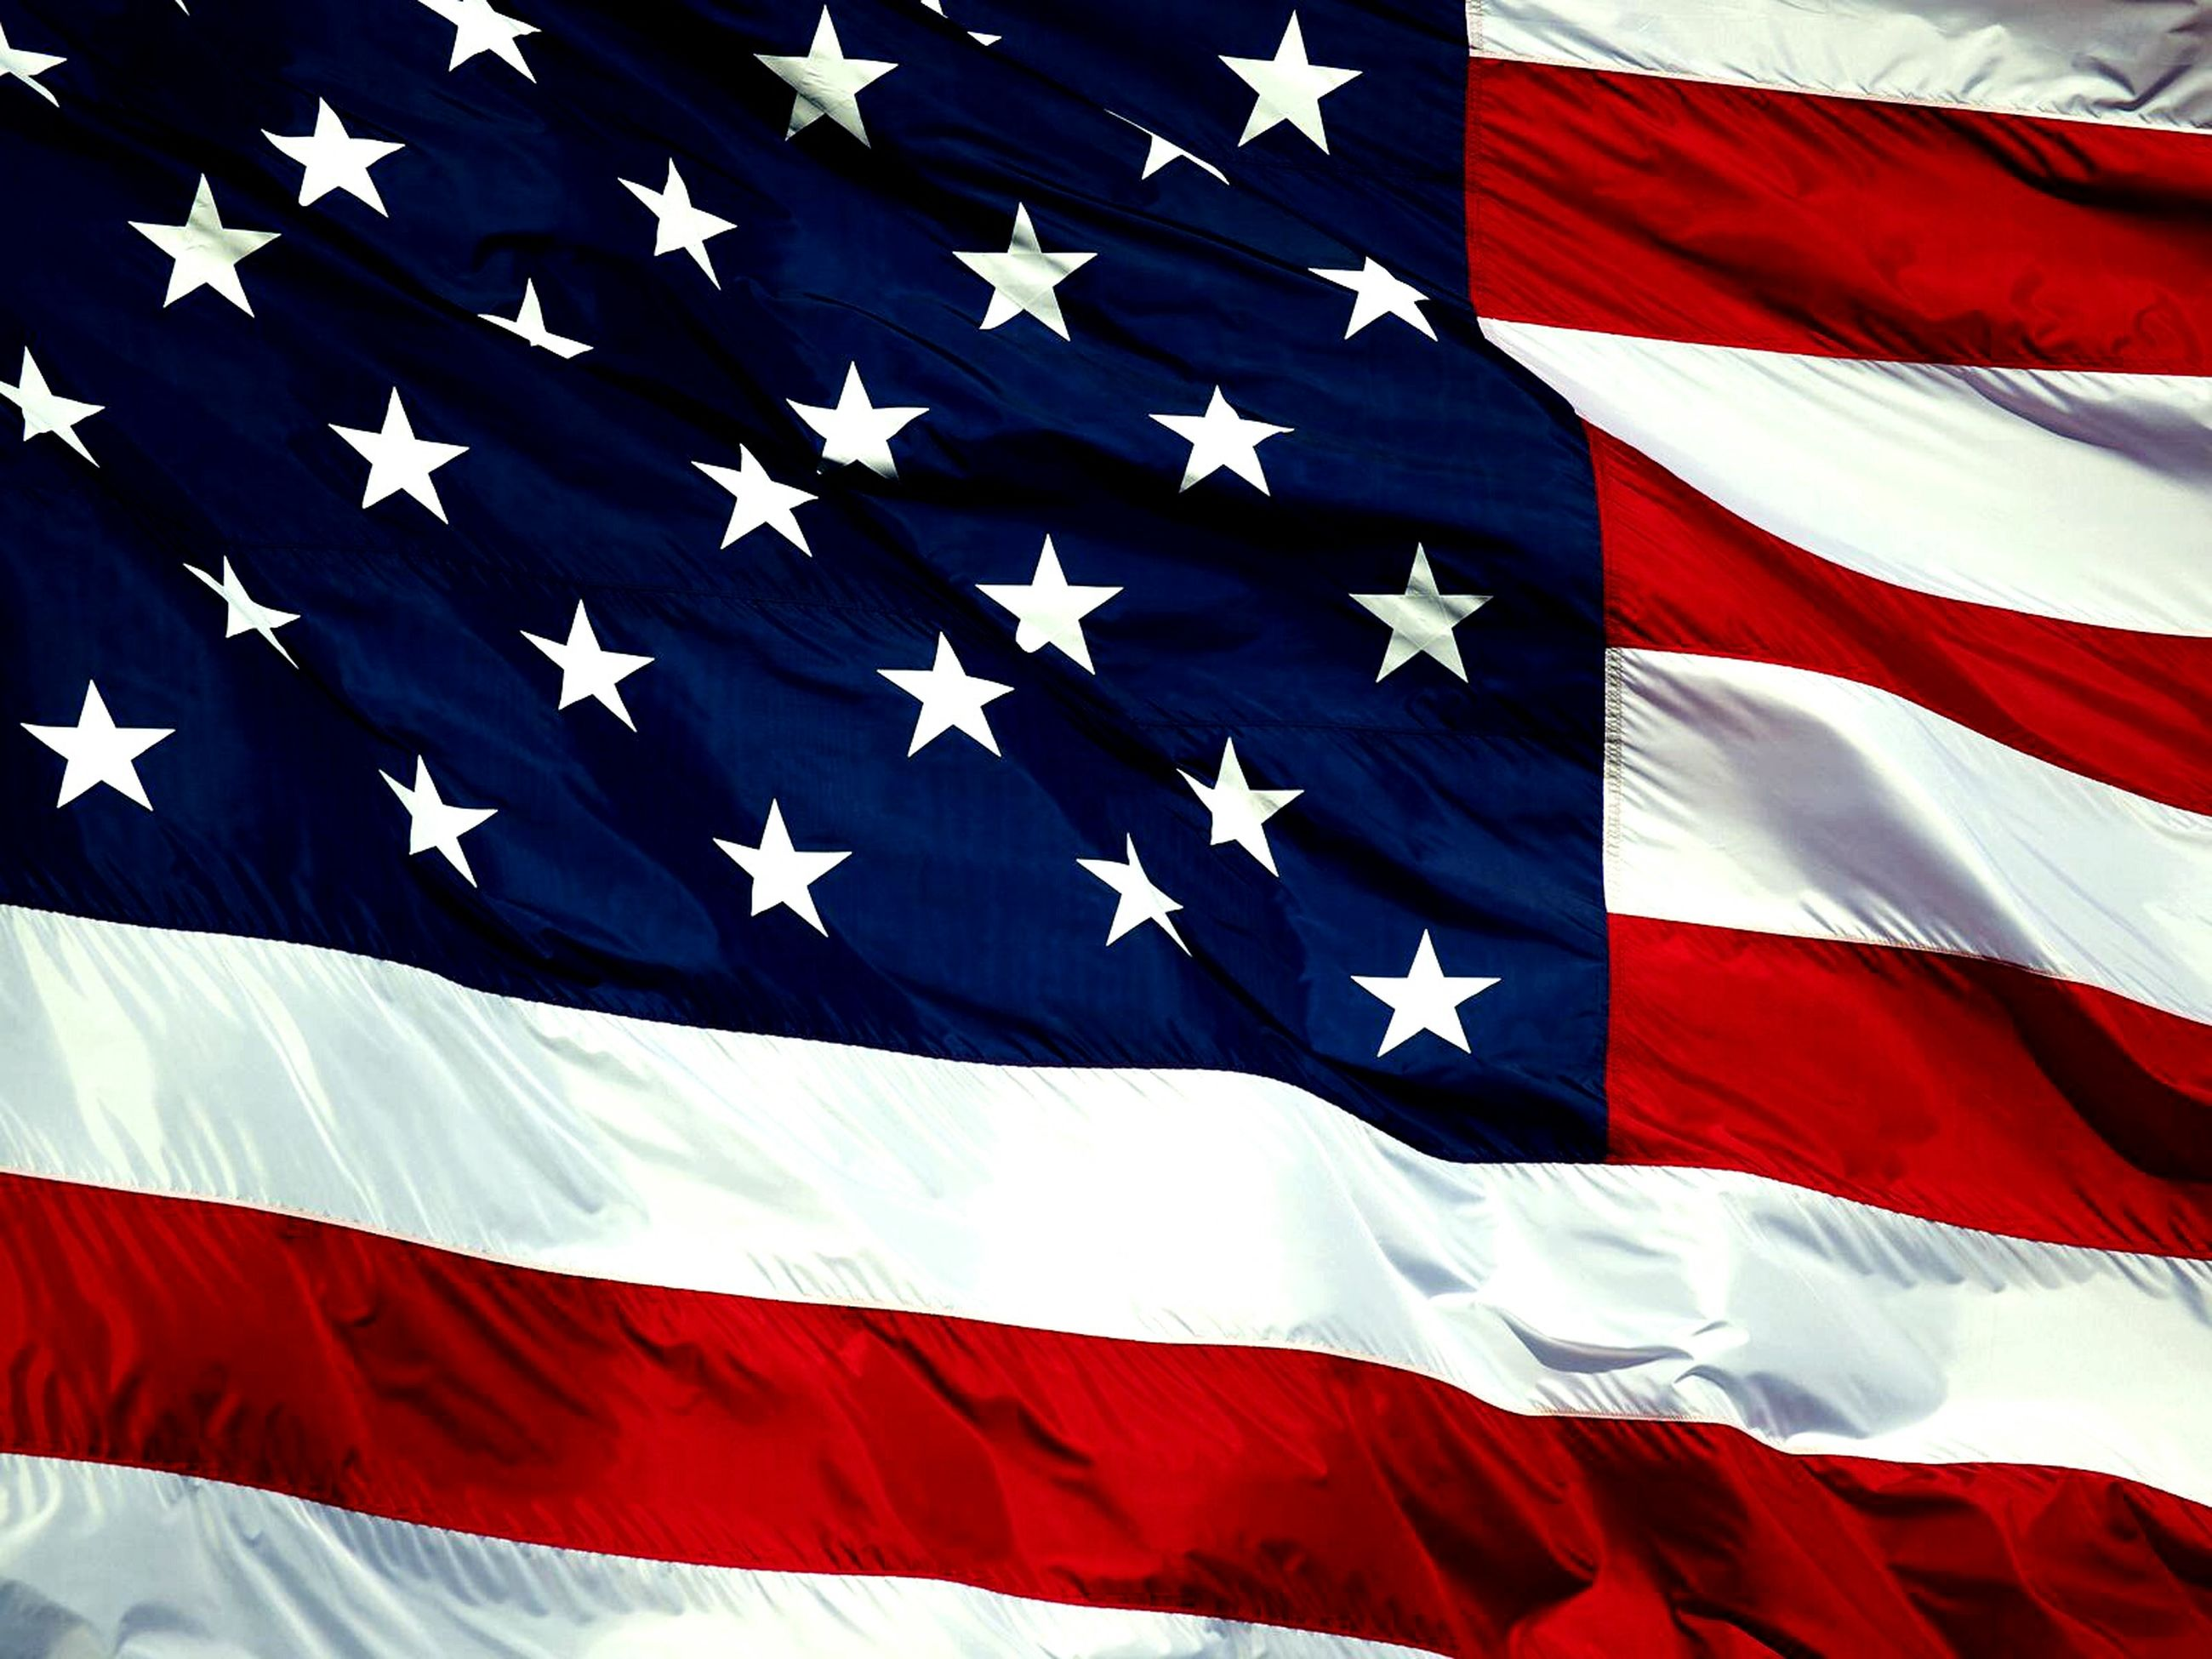 patriotism, identity, flag, striped, national flag, red, american flag, fabric, textile, full frame, backgrounds, multi colored, low angle view, star shape, white color, pattern, culture, pride, wind, colorful